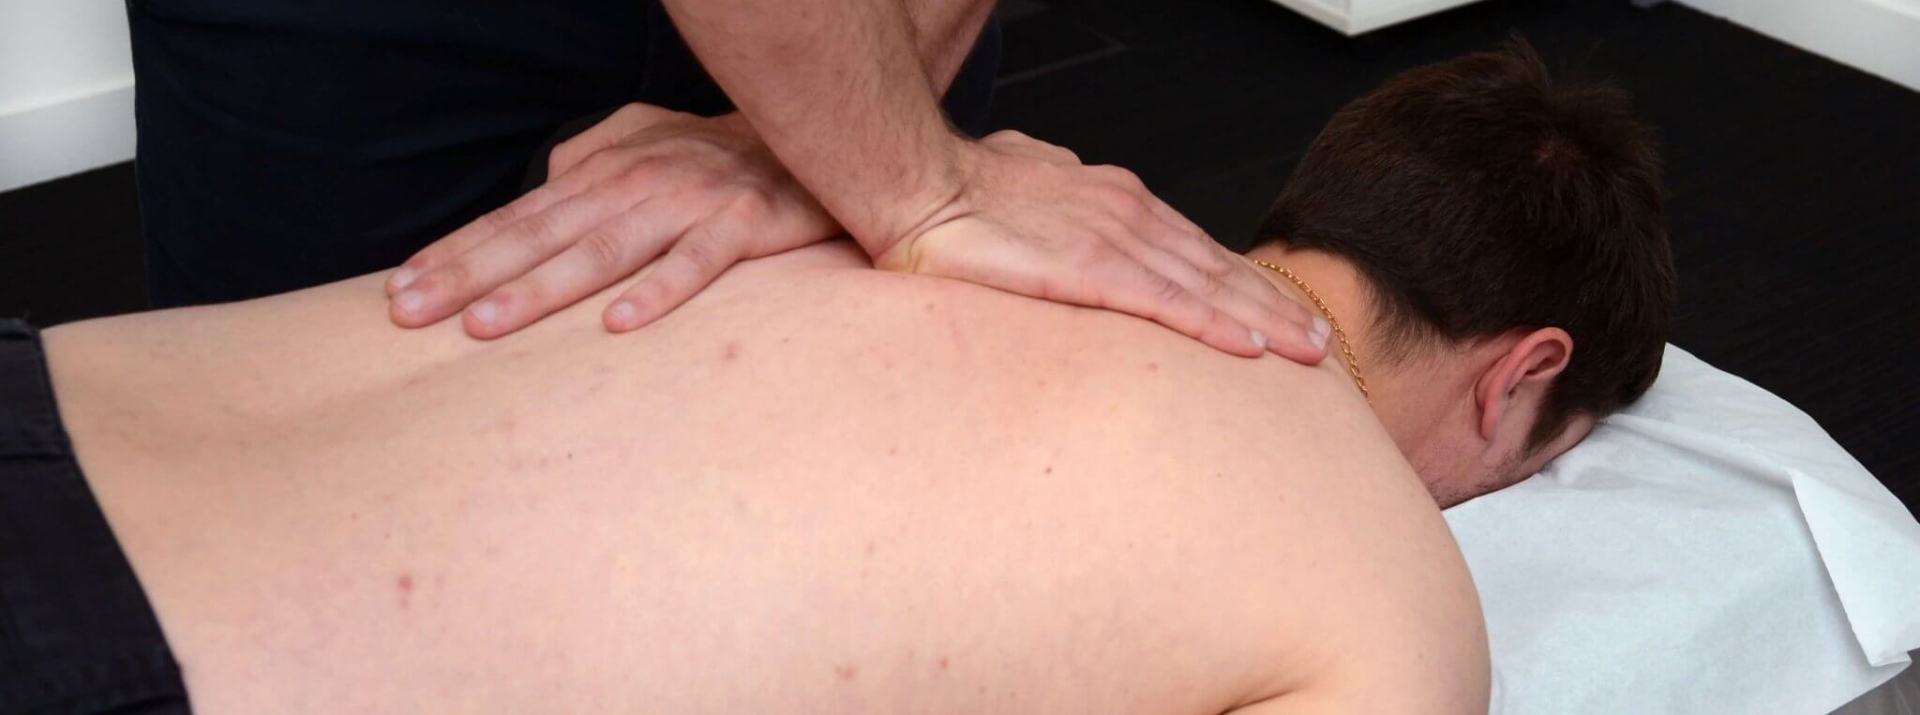 Acupuncture lakky physiotherapy Basingstoke